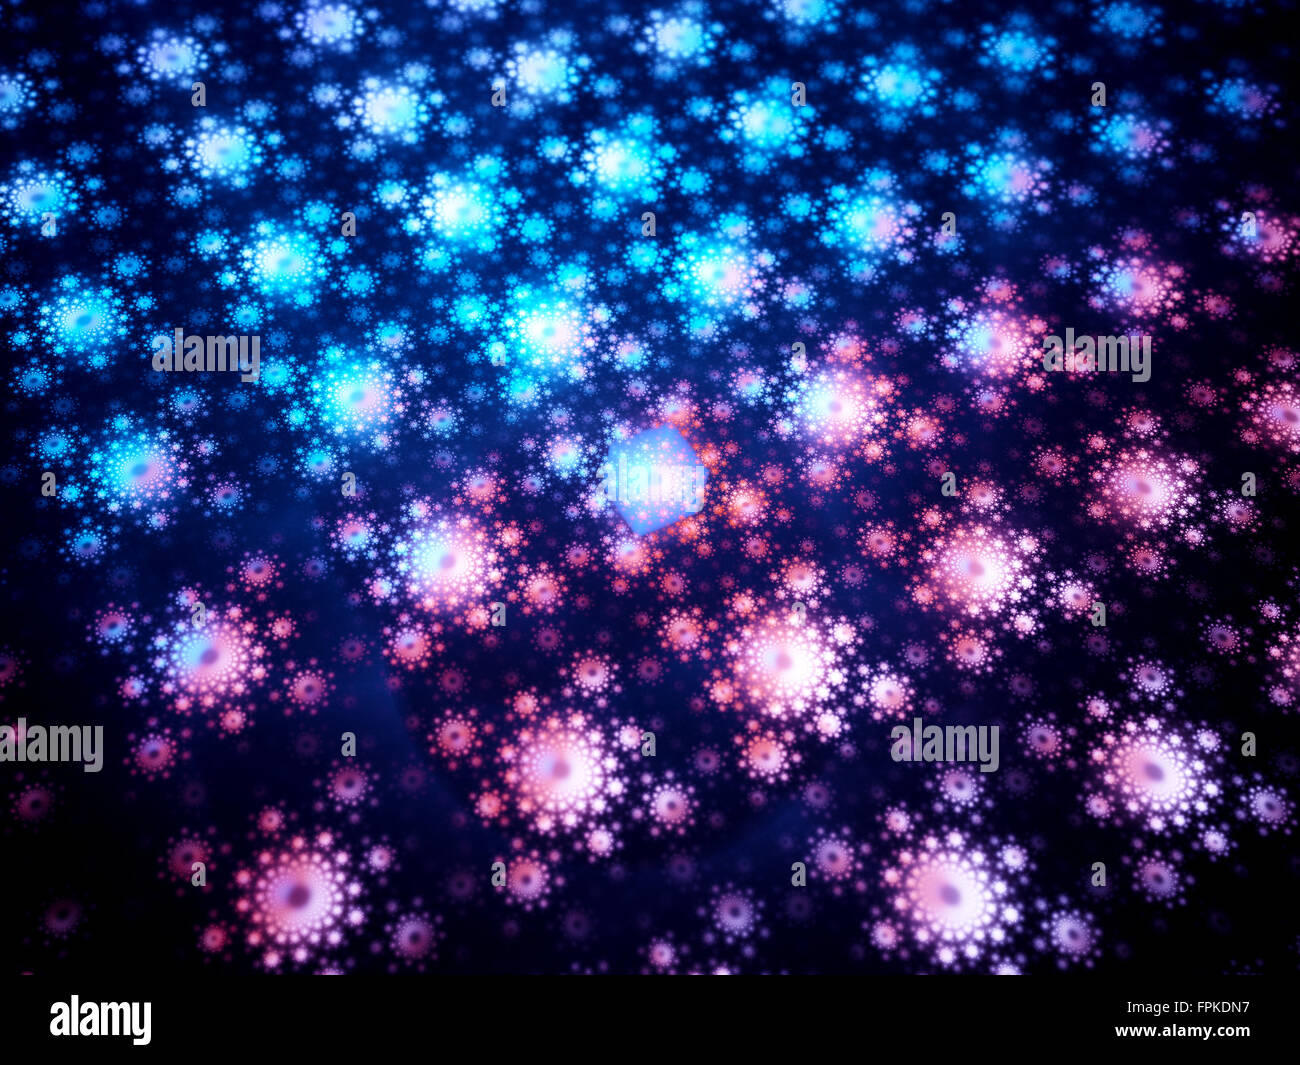 Futuristic quantum chipset fractal, computer generated abstract background - Stock Image